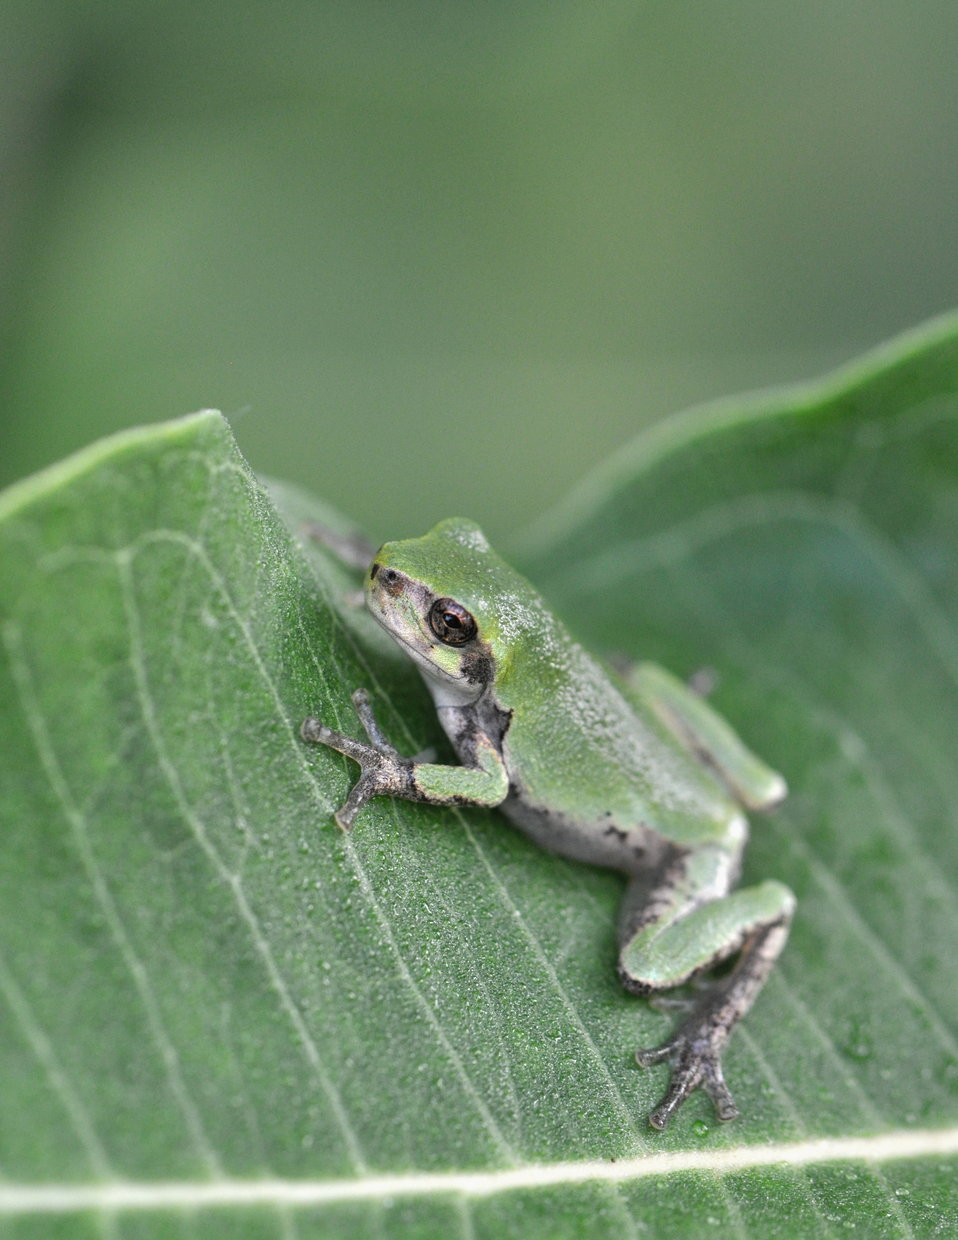 Eastern Gray Treefrog at Horicon National Wildlife Refuge